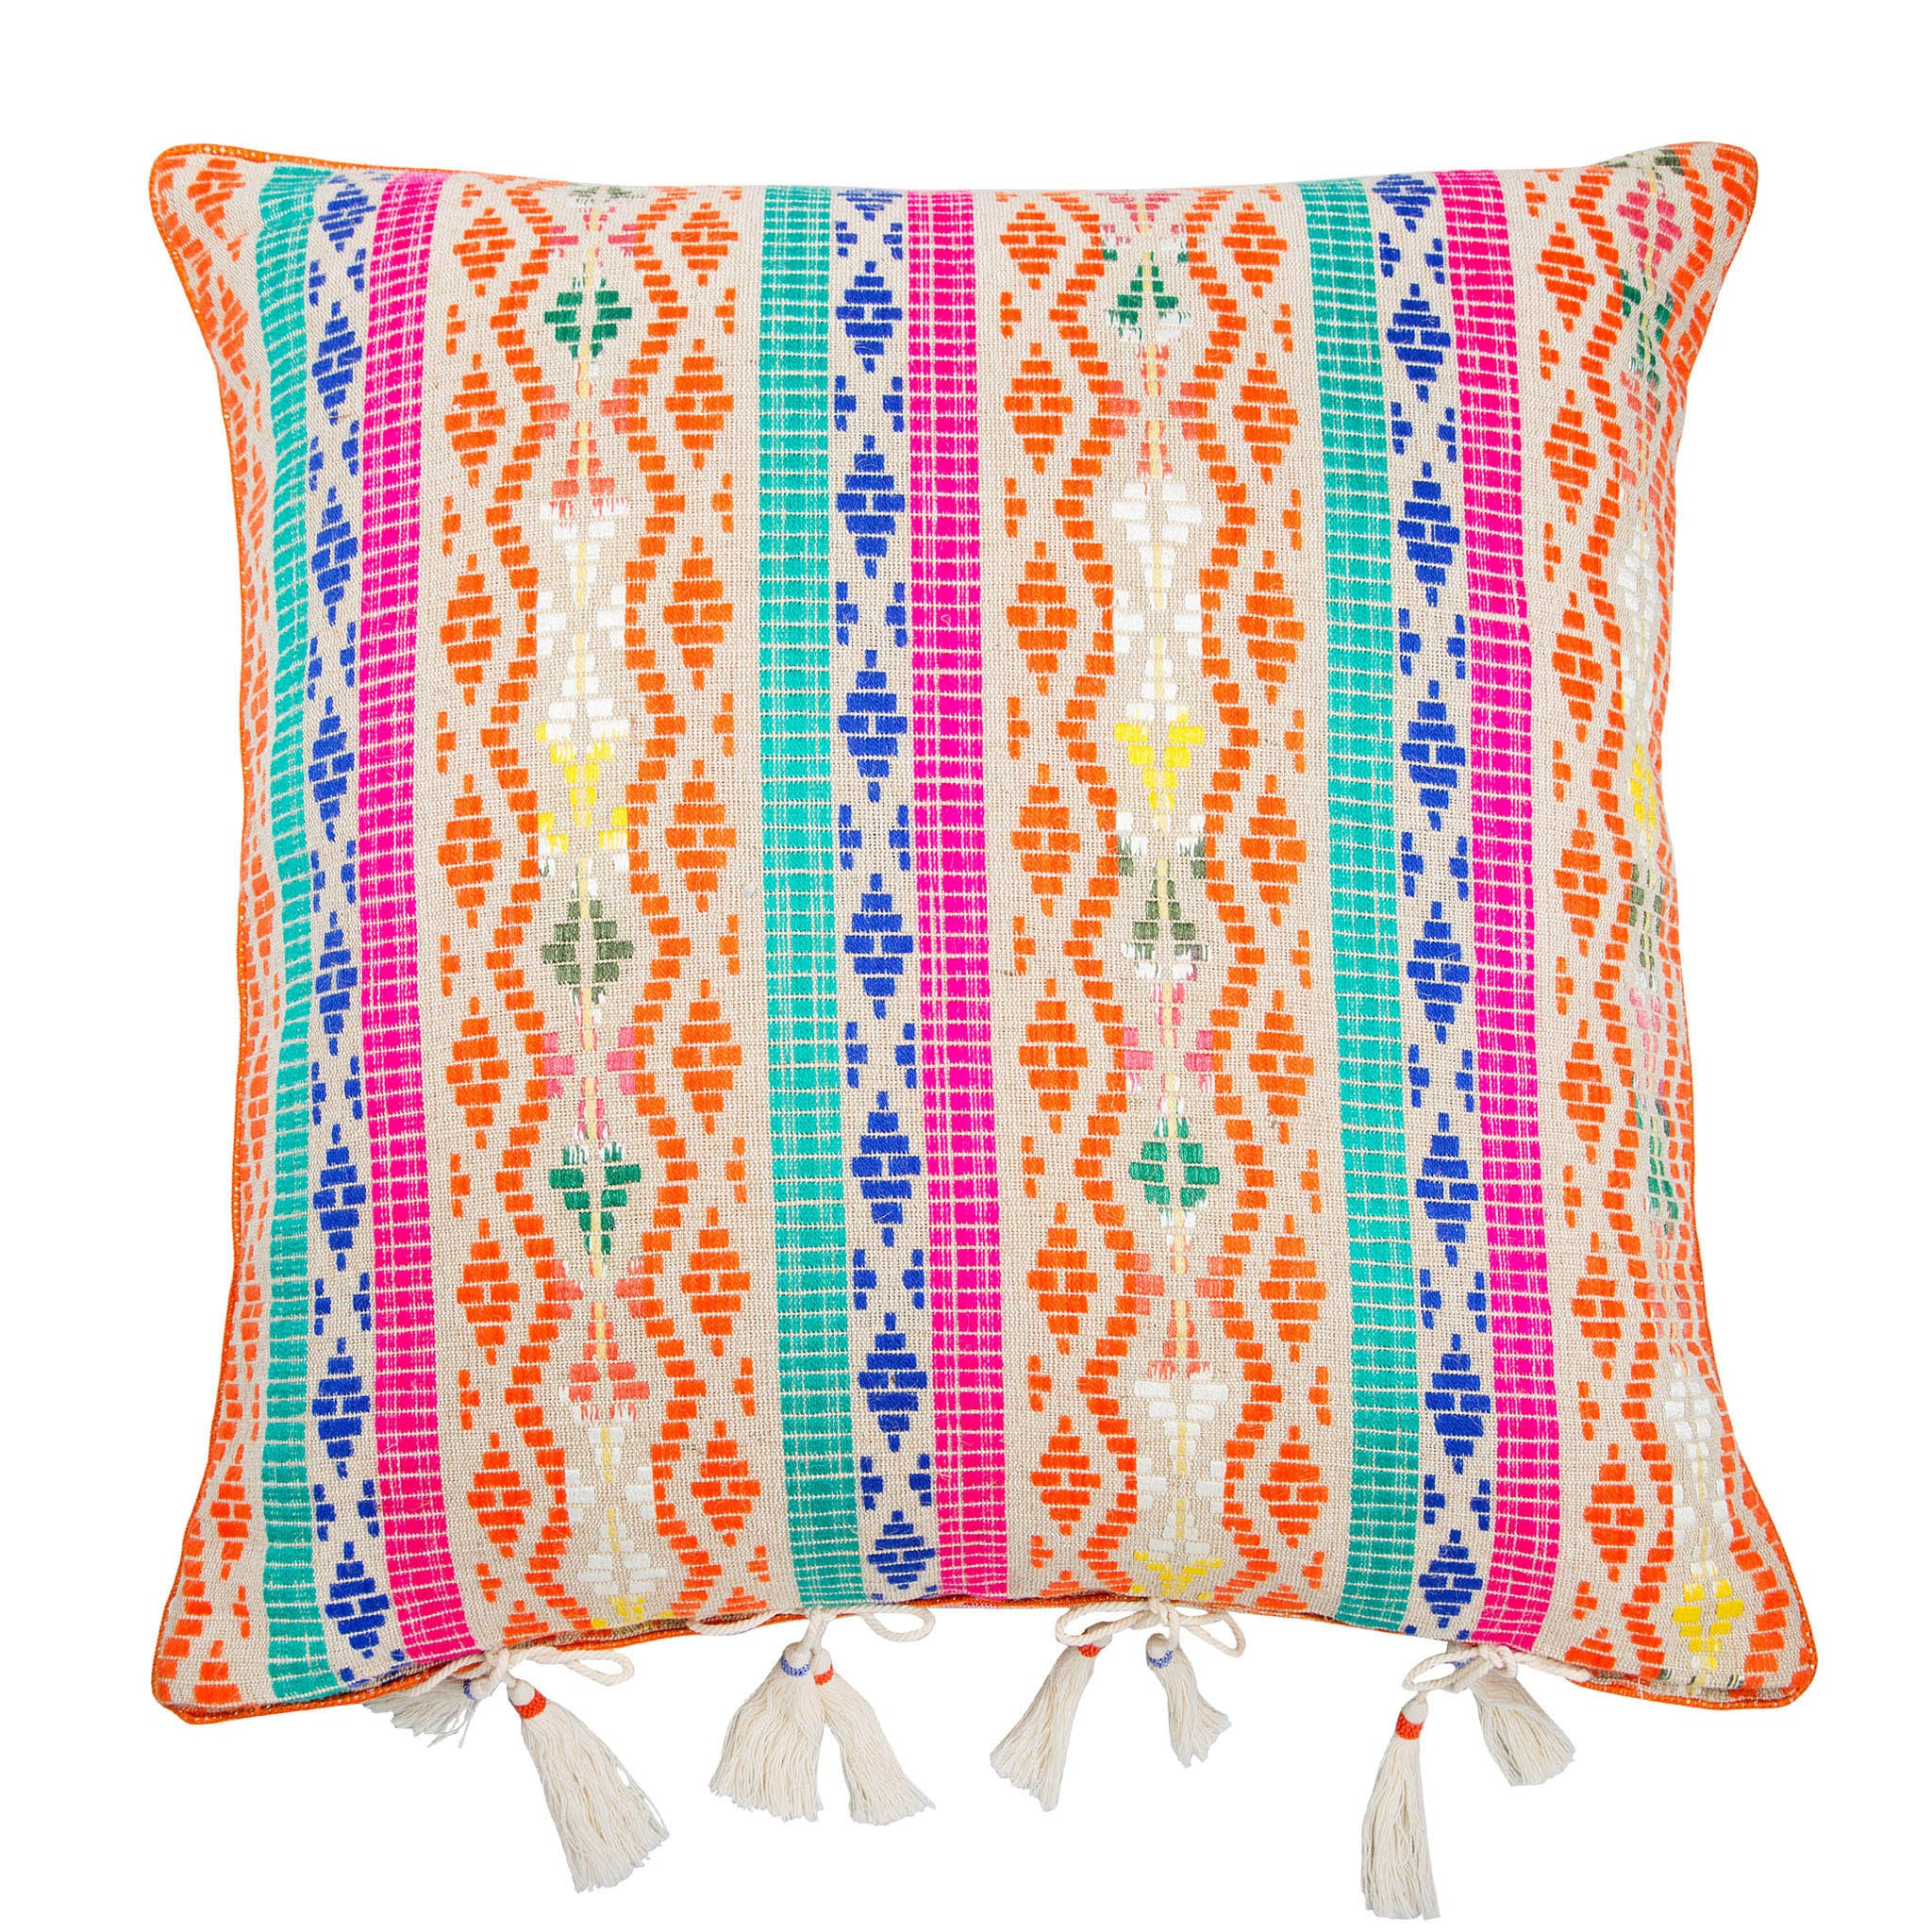 Moroccan Berber-style orange hemp tasselled cushion - Bivain - 1